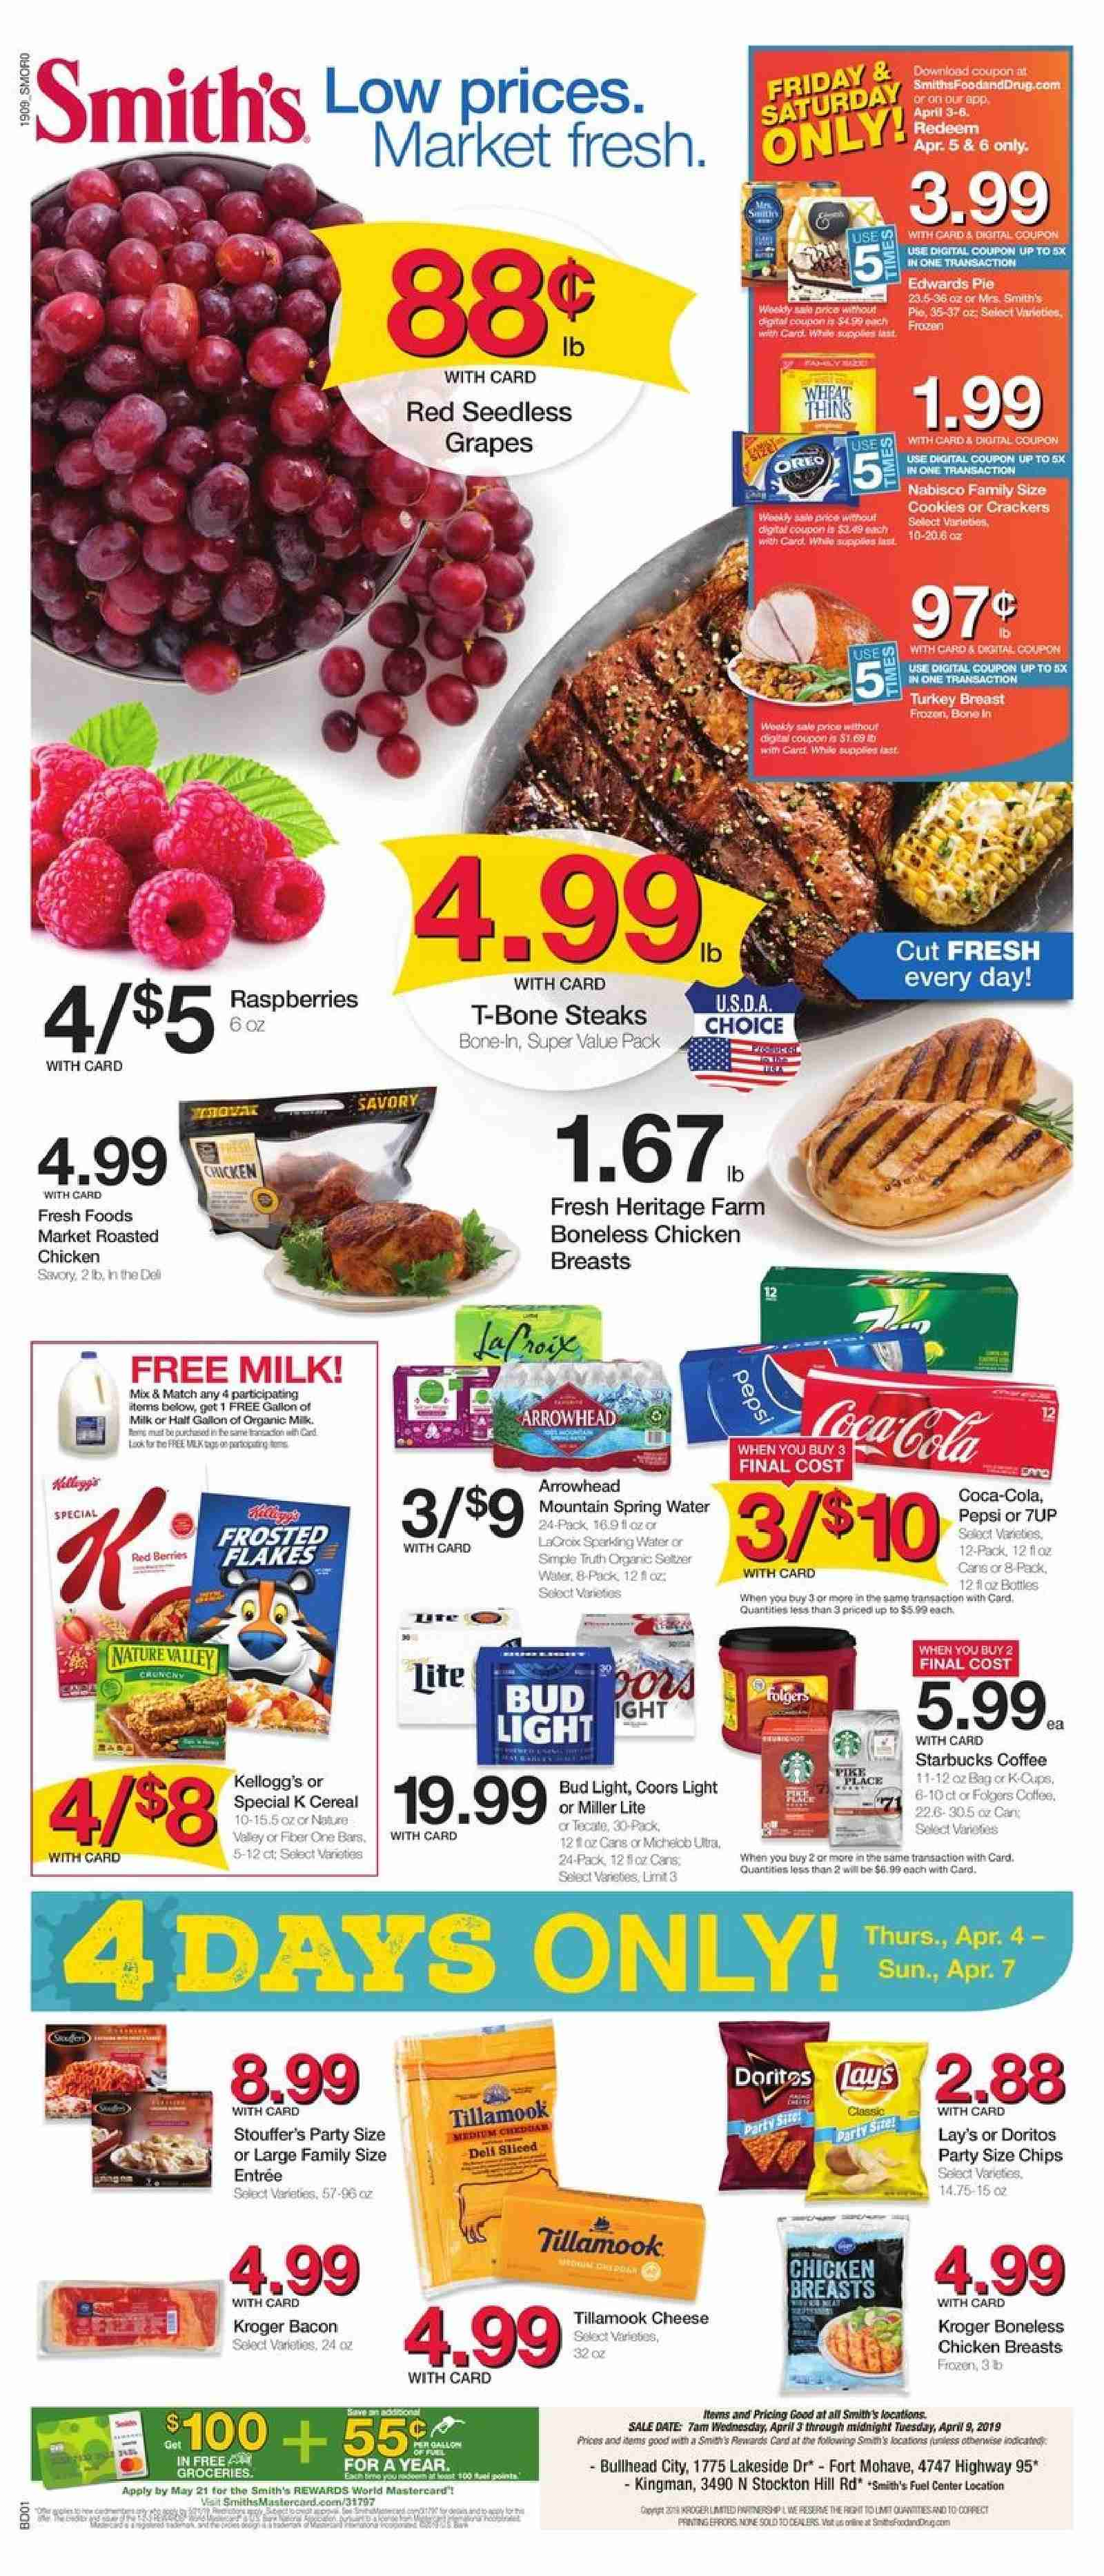 Smith's Flyer - 04.03.2019 - 04.09.2019 - Sales products - Miller Lite, Bud Light, Coors, grapes, raspberries, seedless grapes, pie, cheese, milk, chips, Coca-Cola, seltzer, water, coffee, Folgers, turkey, turkey breast, chicken, chicken breast, t-bone steak, Frozen, Starbucks. Page 1.